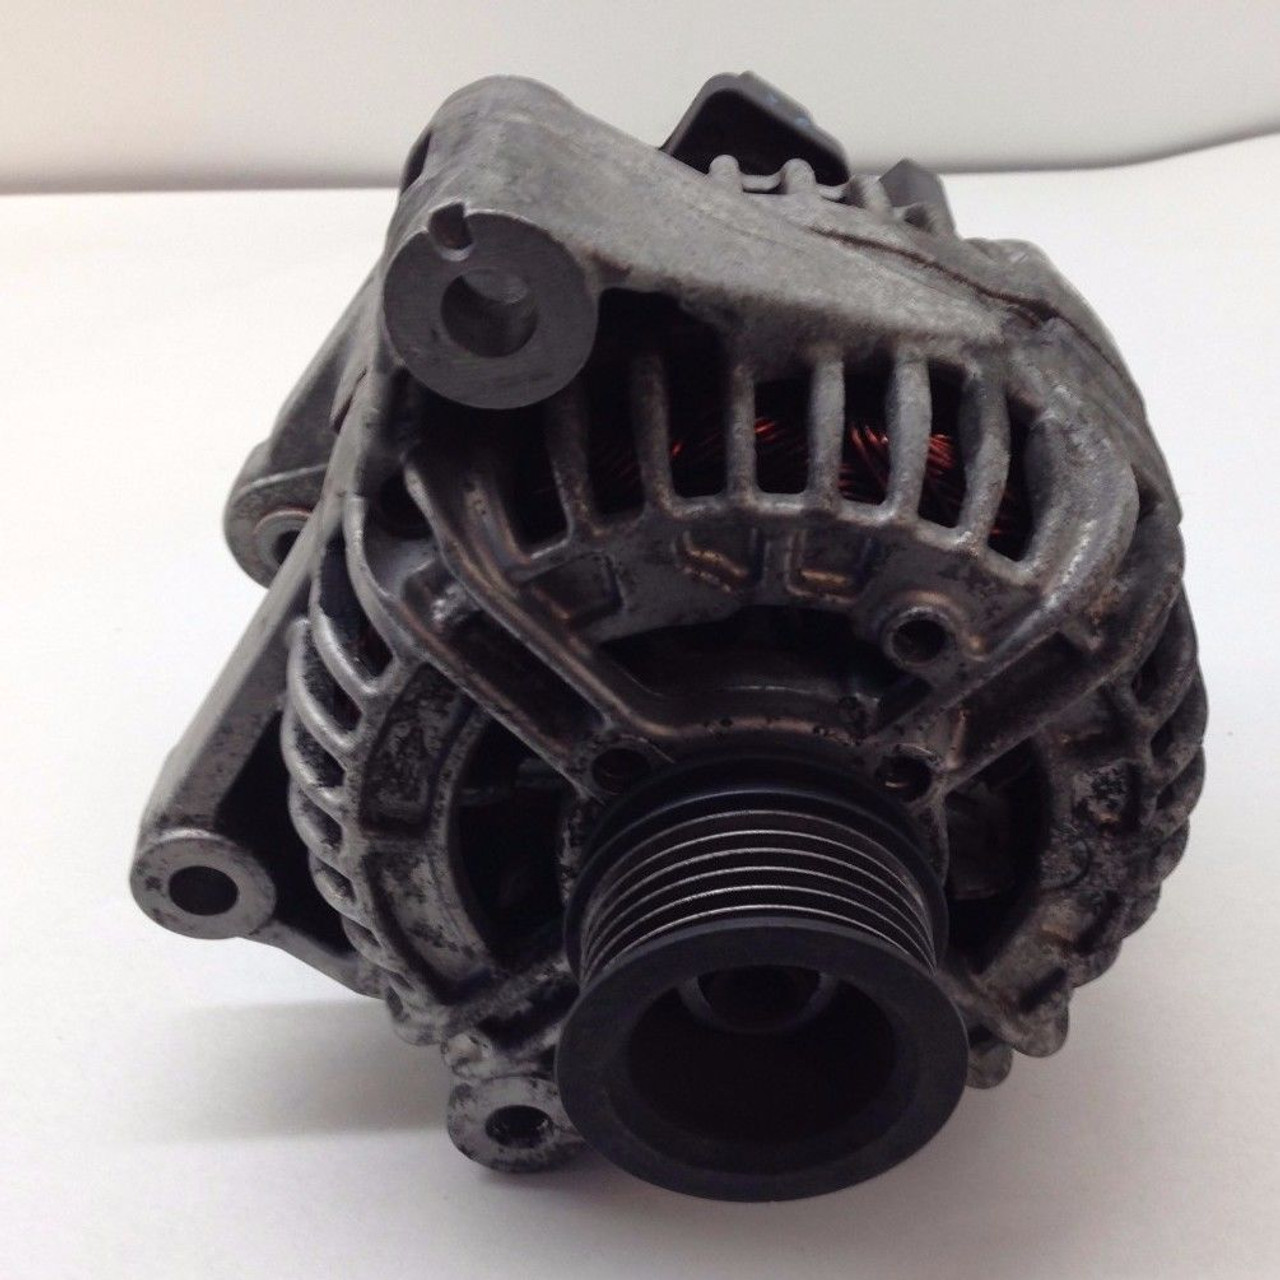 Bmw Z4 2003 For Sale: 2003-2005 BMW Z4 OEM Alternator, Bosch 120 Amp 12317519620